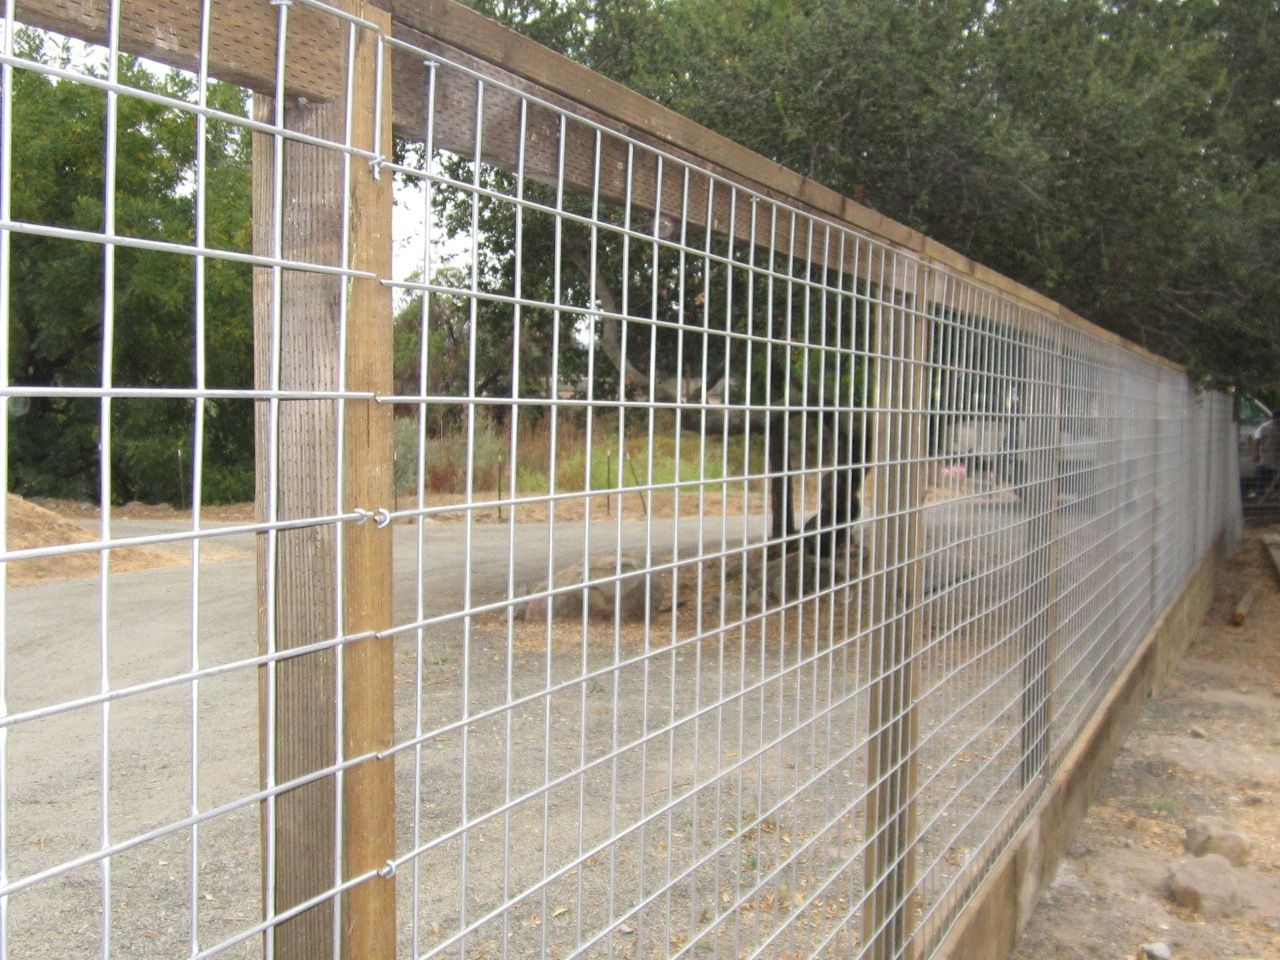 4 4 2 4 Hi Five Wire Panels Arbor Fence Inc A Diamond Certified Company Hog Wire Fence Welded Wire Fence Cattle Panel Fence